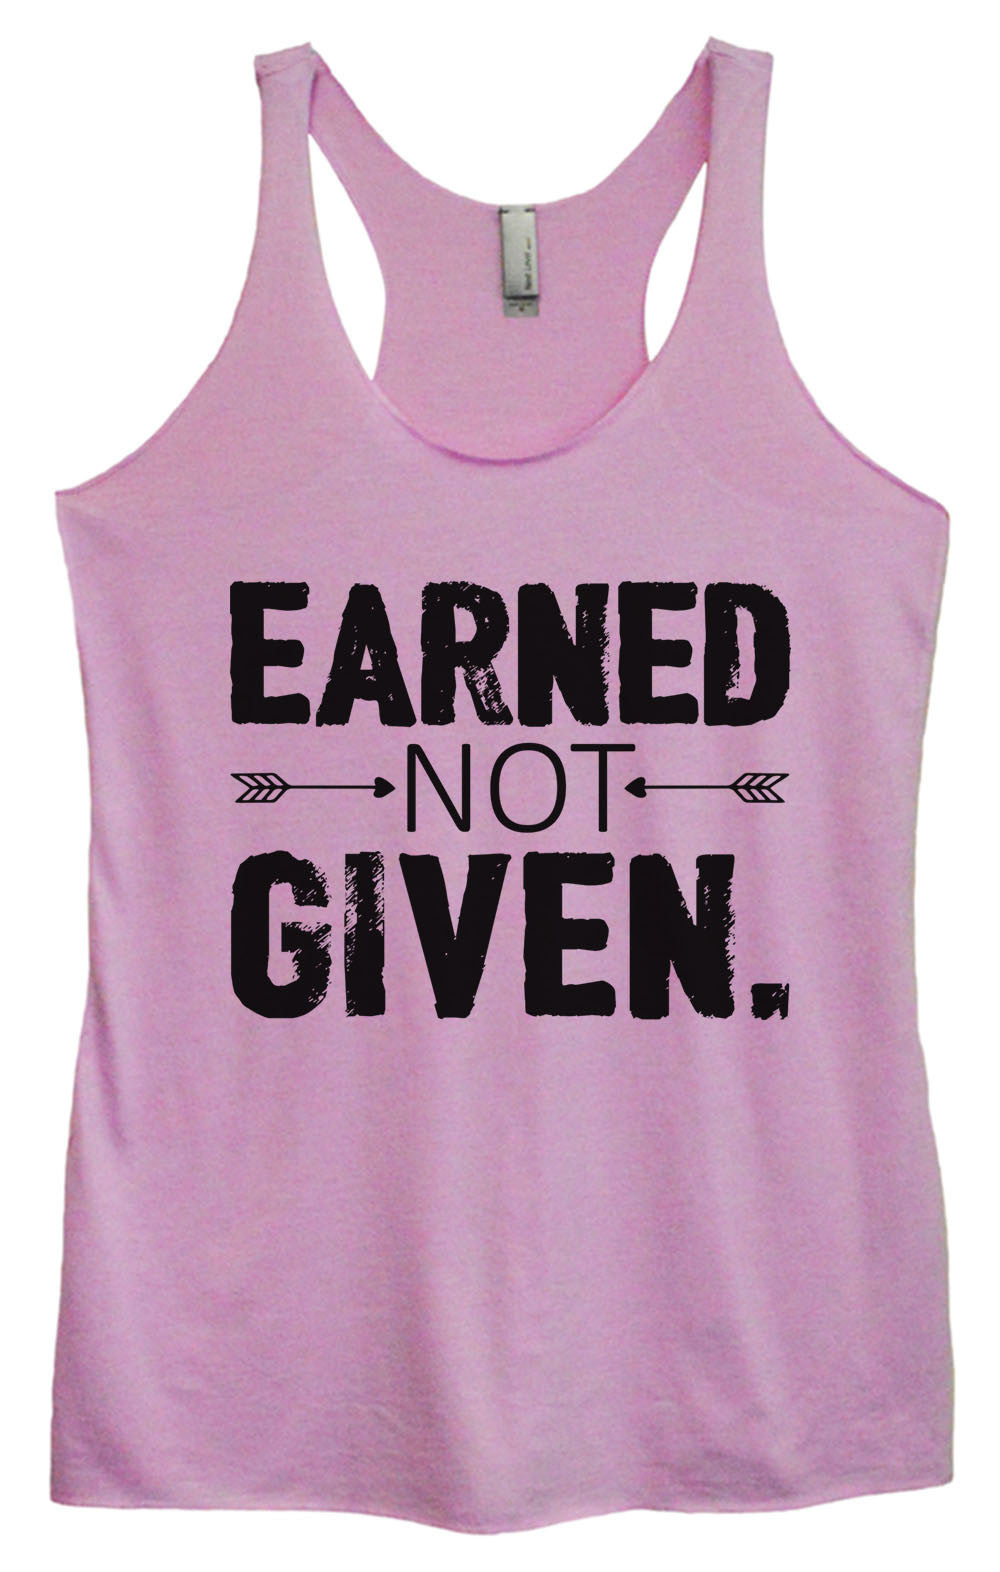 Womens Fashion Triblend Tank Top - Earned Not Given - Tri-918 - Funny Shirts Tank Tops Burnouts and Triblends  - 3